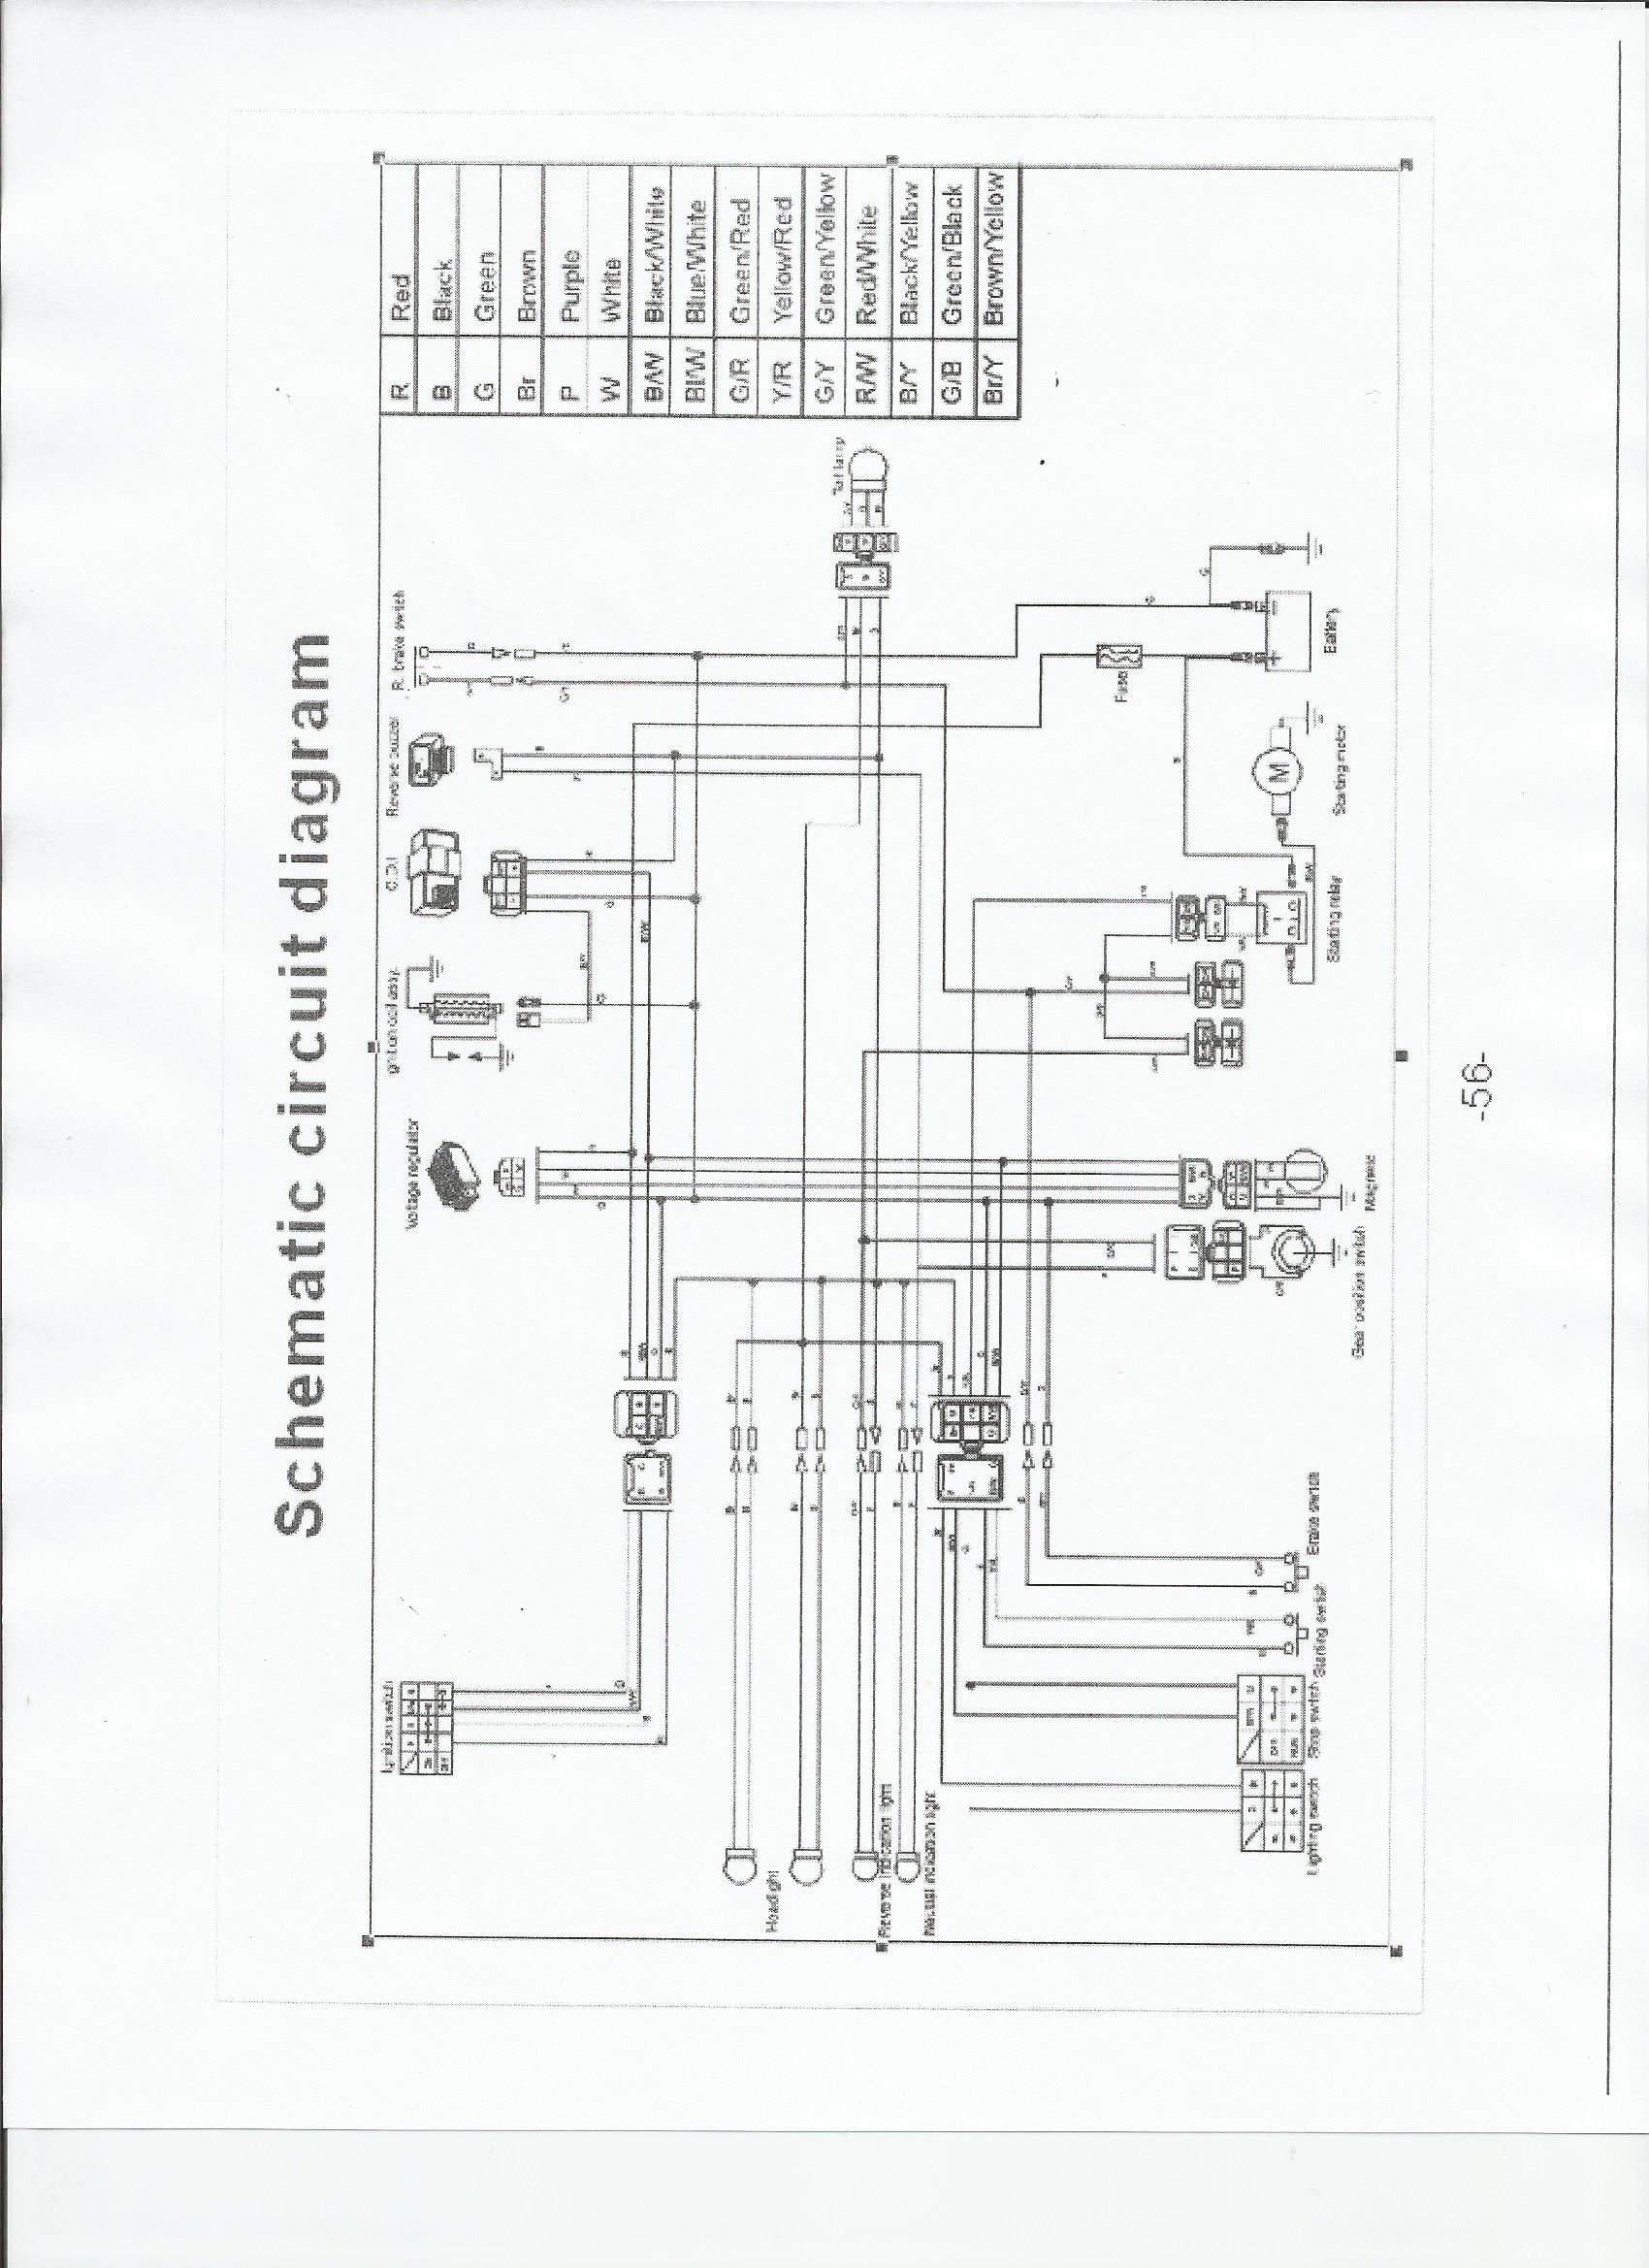 tao tao wiring schematic taotao mini and youth atv wiring schematic familygokarts support taotao 50 ignition wiring diagram at crackthecode.co